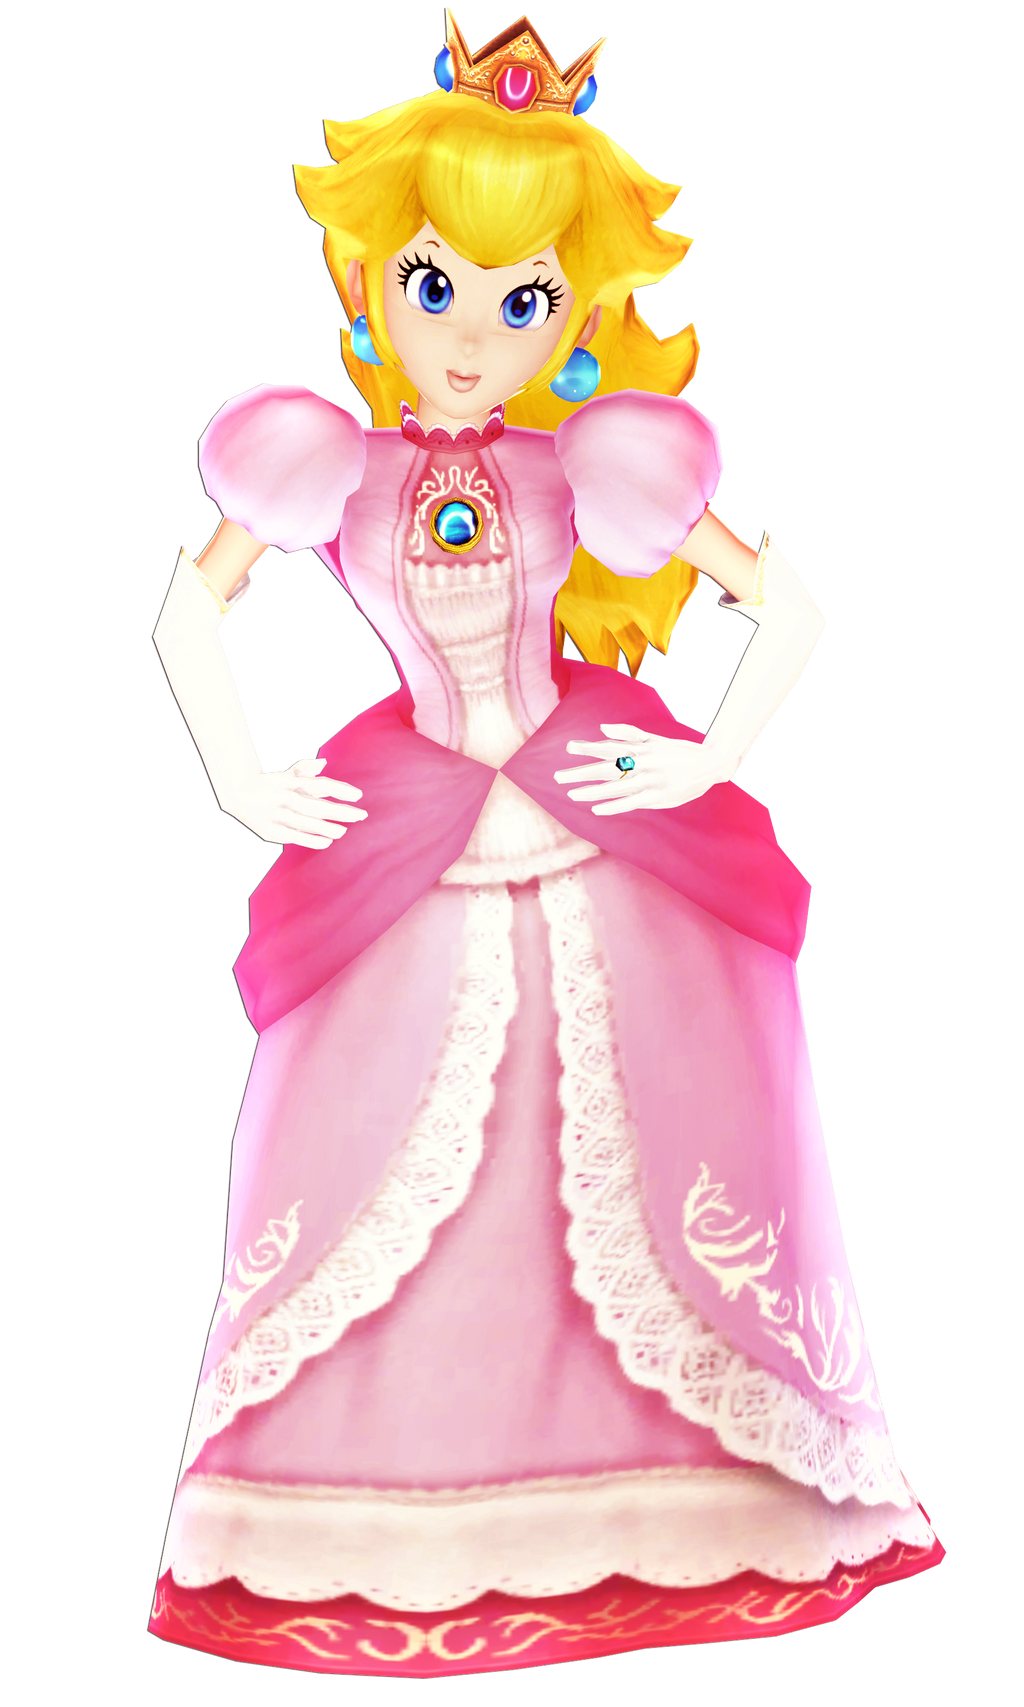 princess peach mmd render by 6rosenoir9 on deviantart